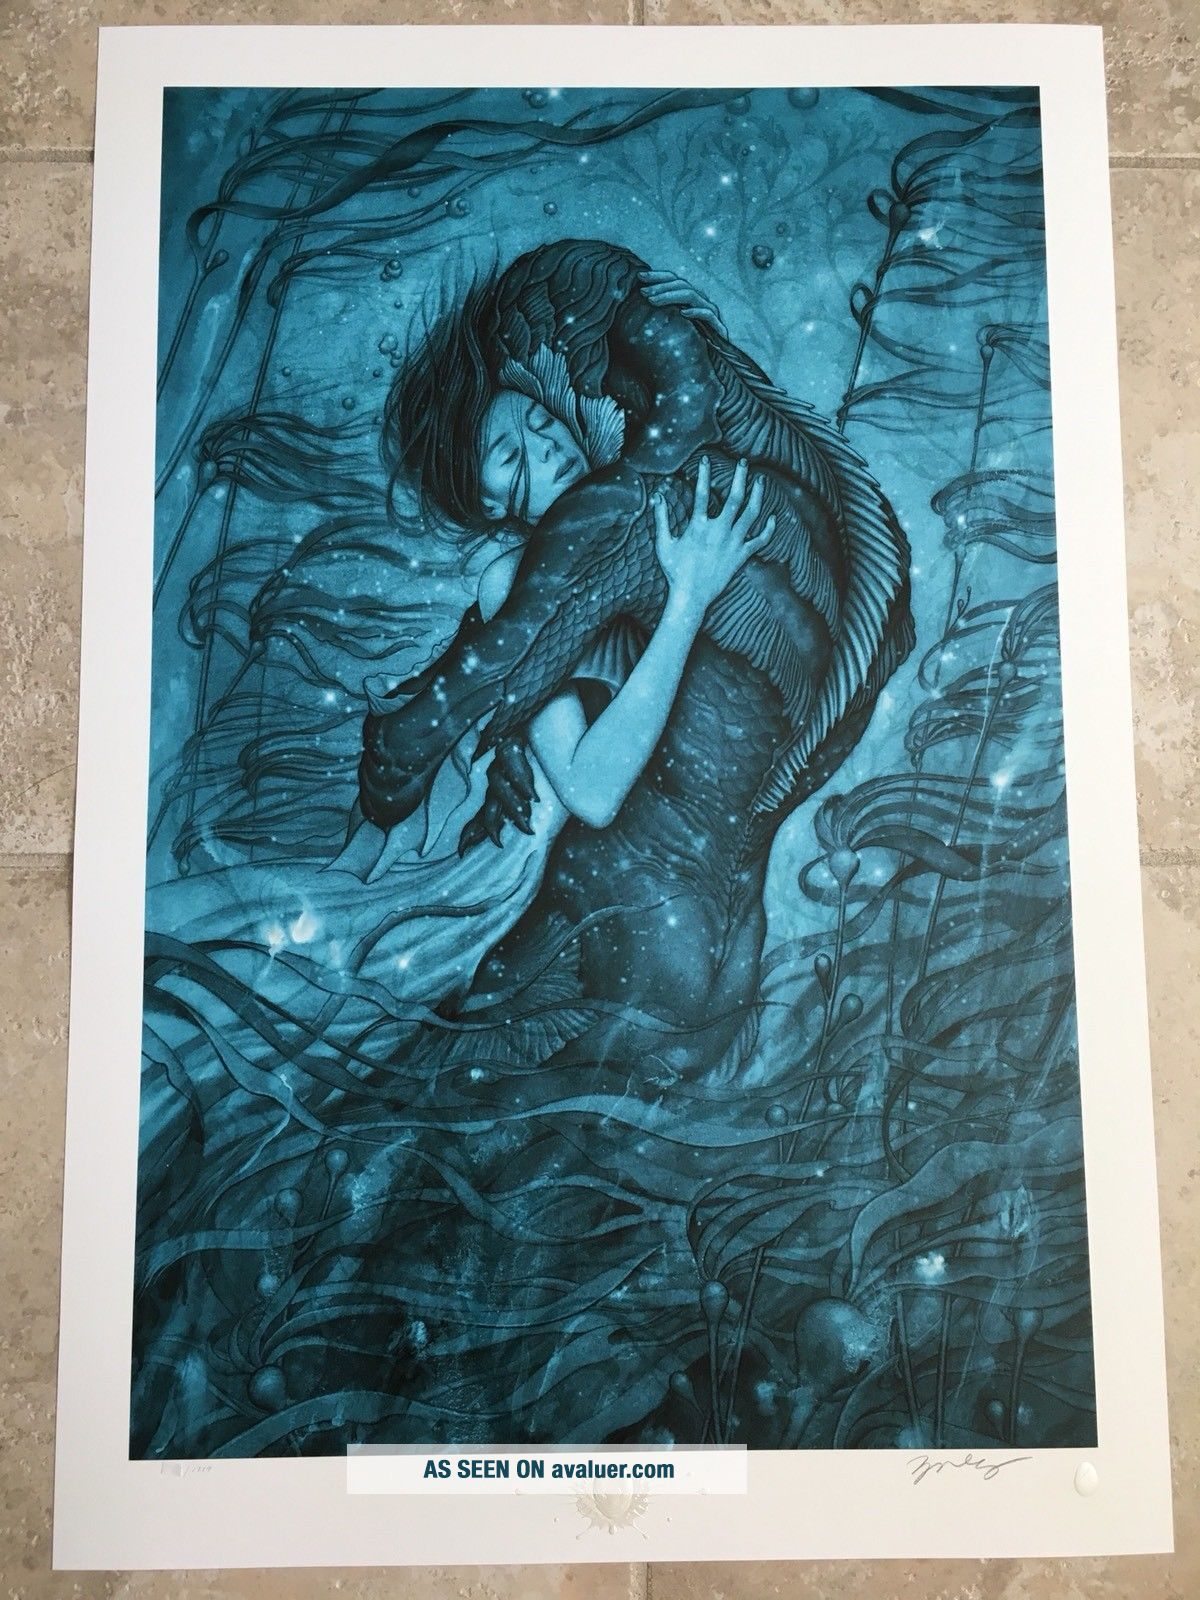 The Shape of Water Guillermo del Toro Movie Art Fabric Poster 24x36 A230